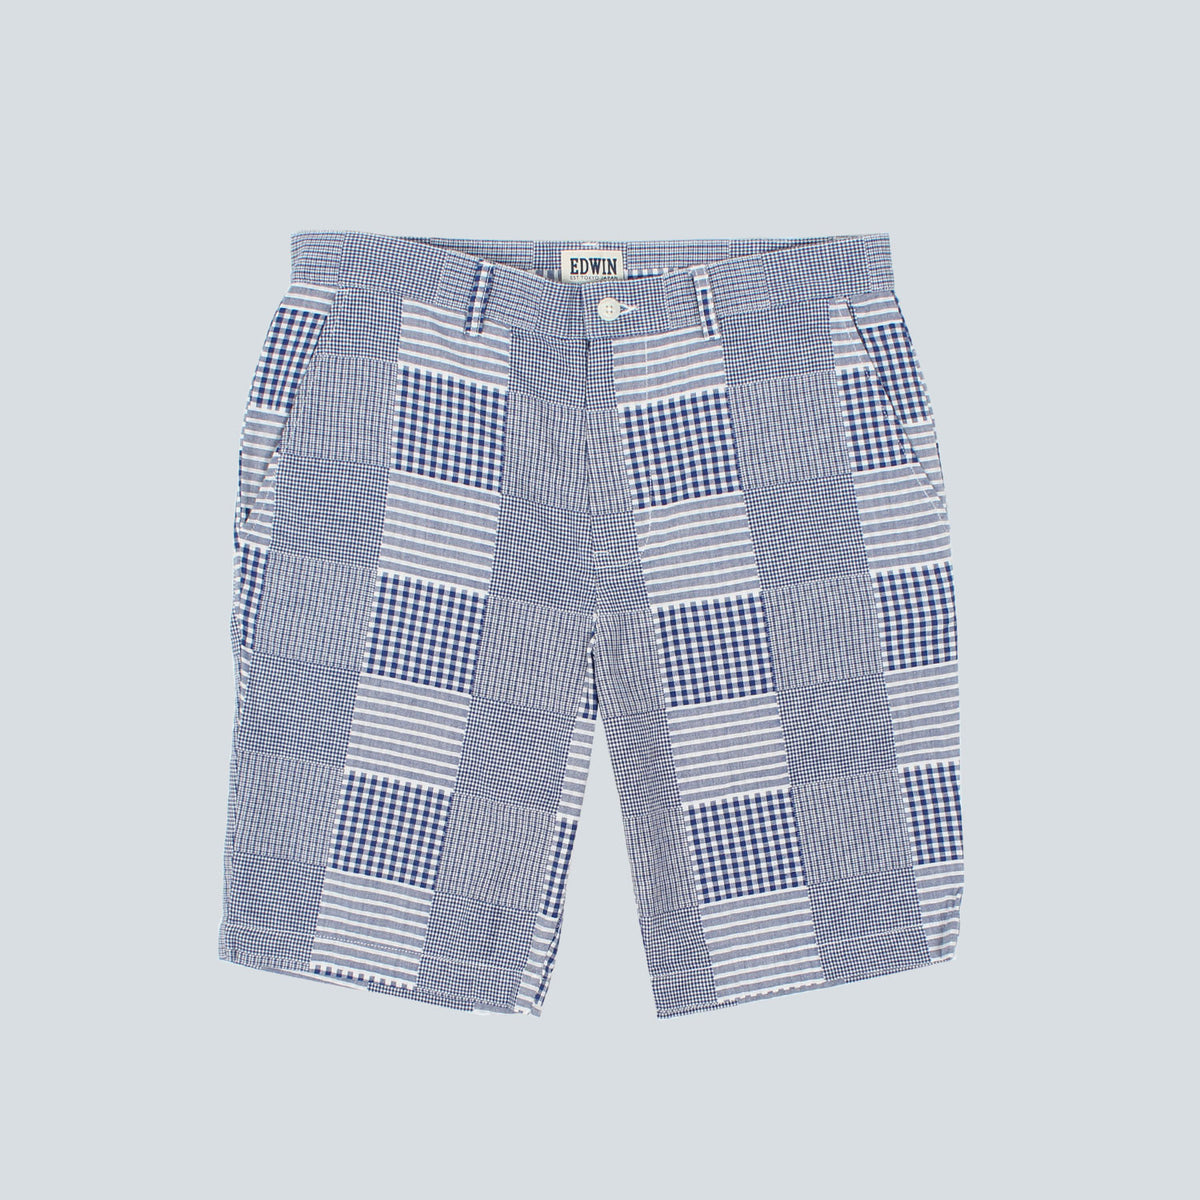 Edwin - Patchwork Boardwalk Shorts - Blue